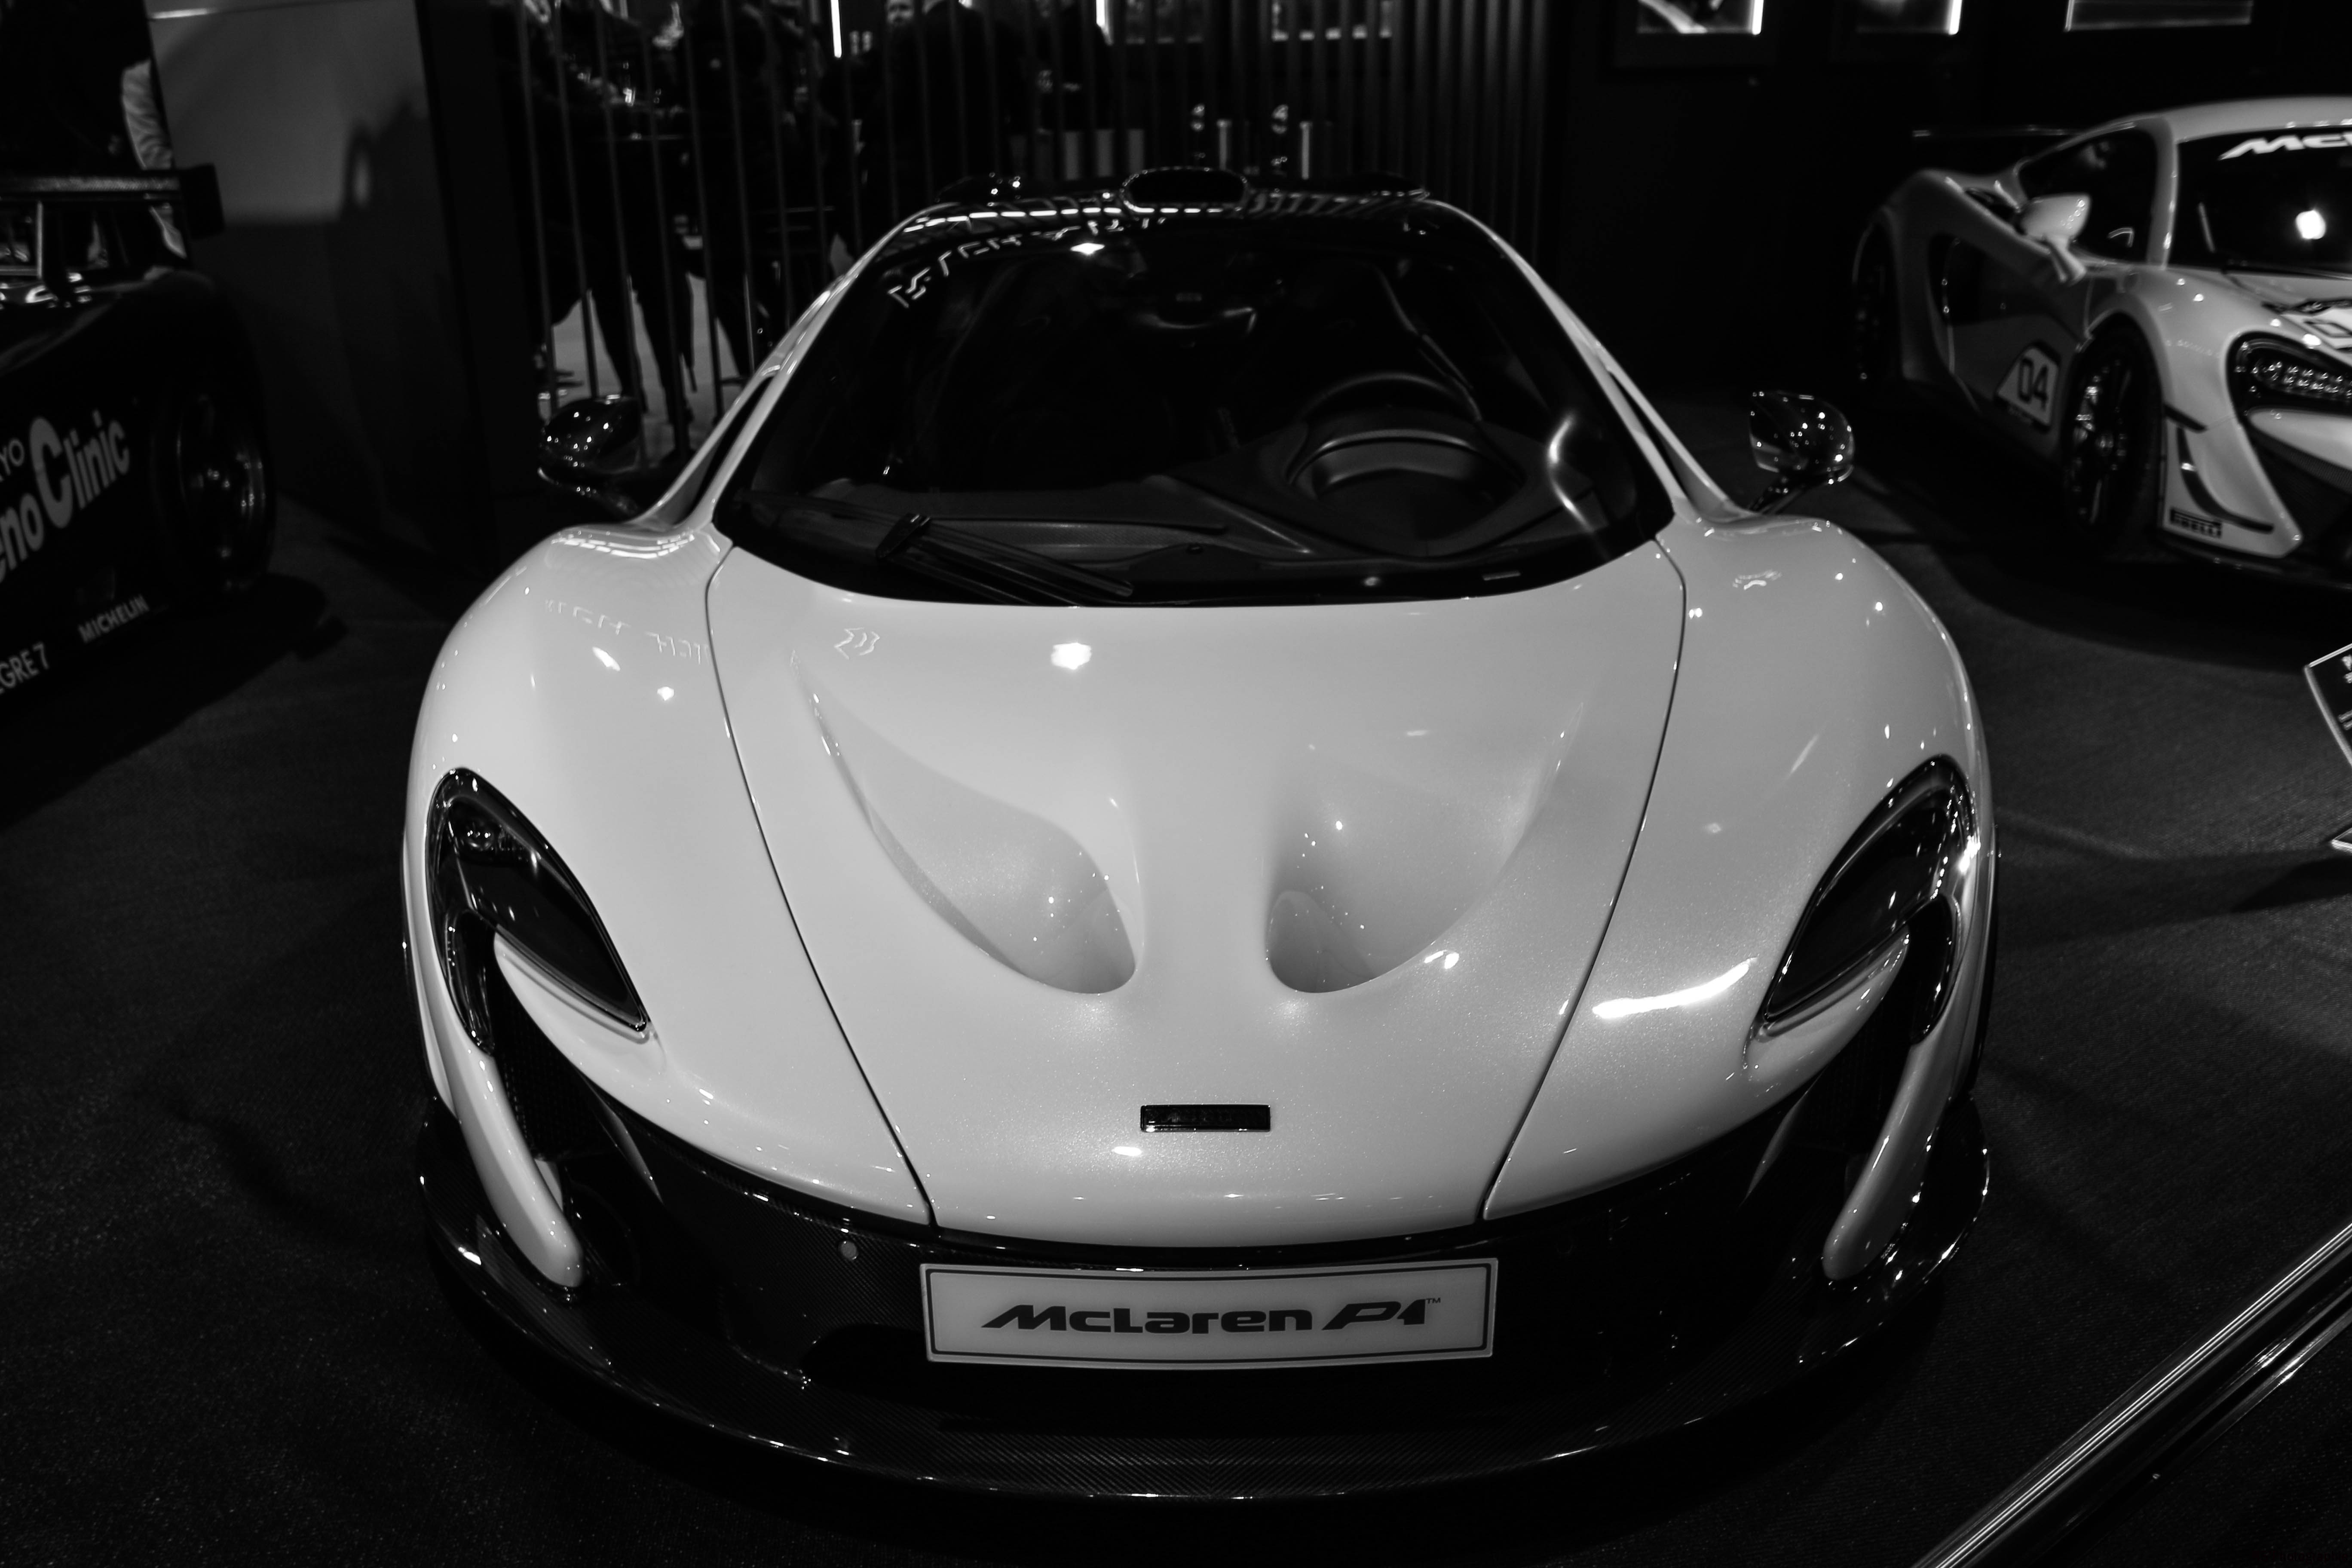 McLaren P1 - 2013 - smile-face - stand Richard Mille - Retromobile 2018 - photo by Arnaud Demasier RS Photographie